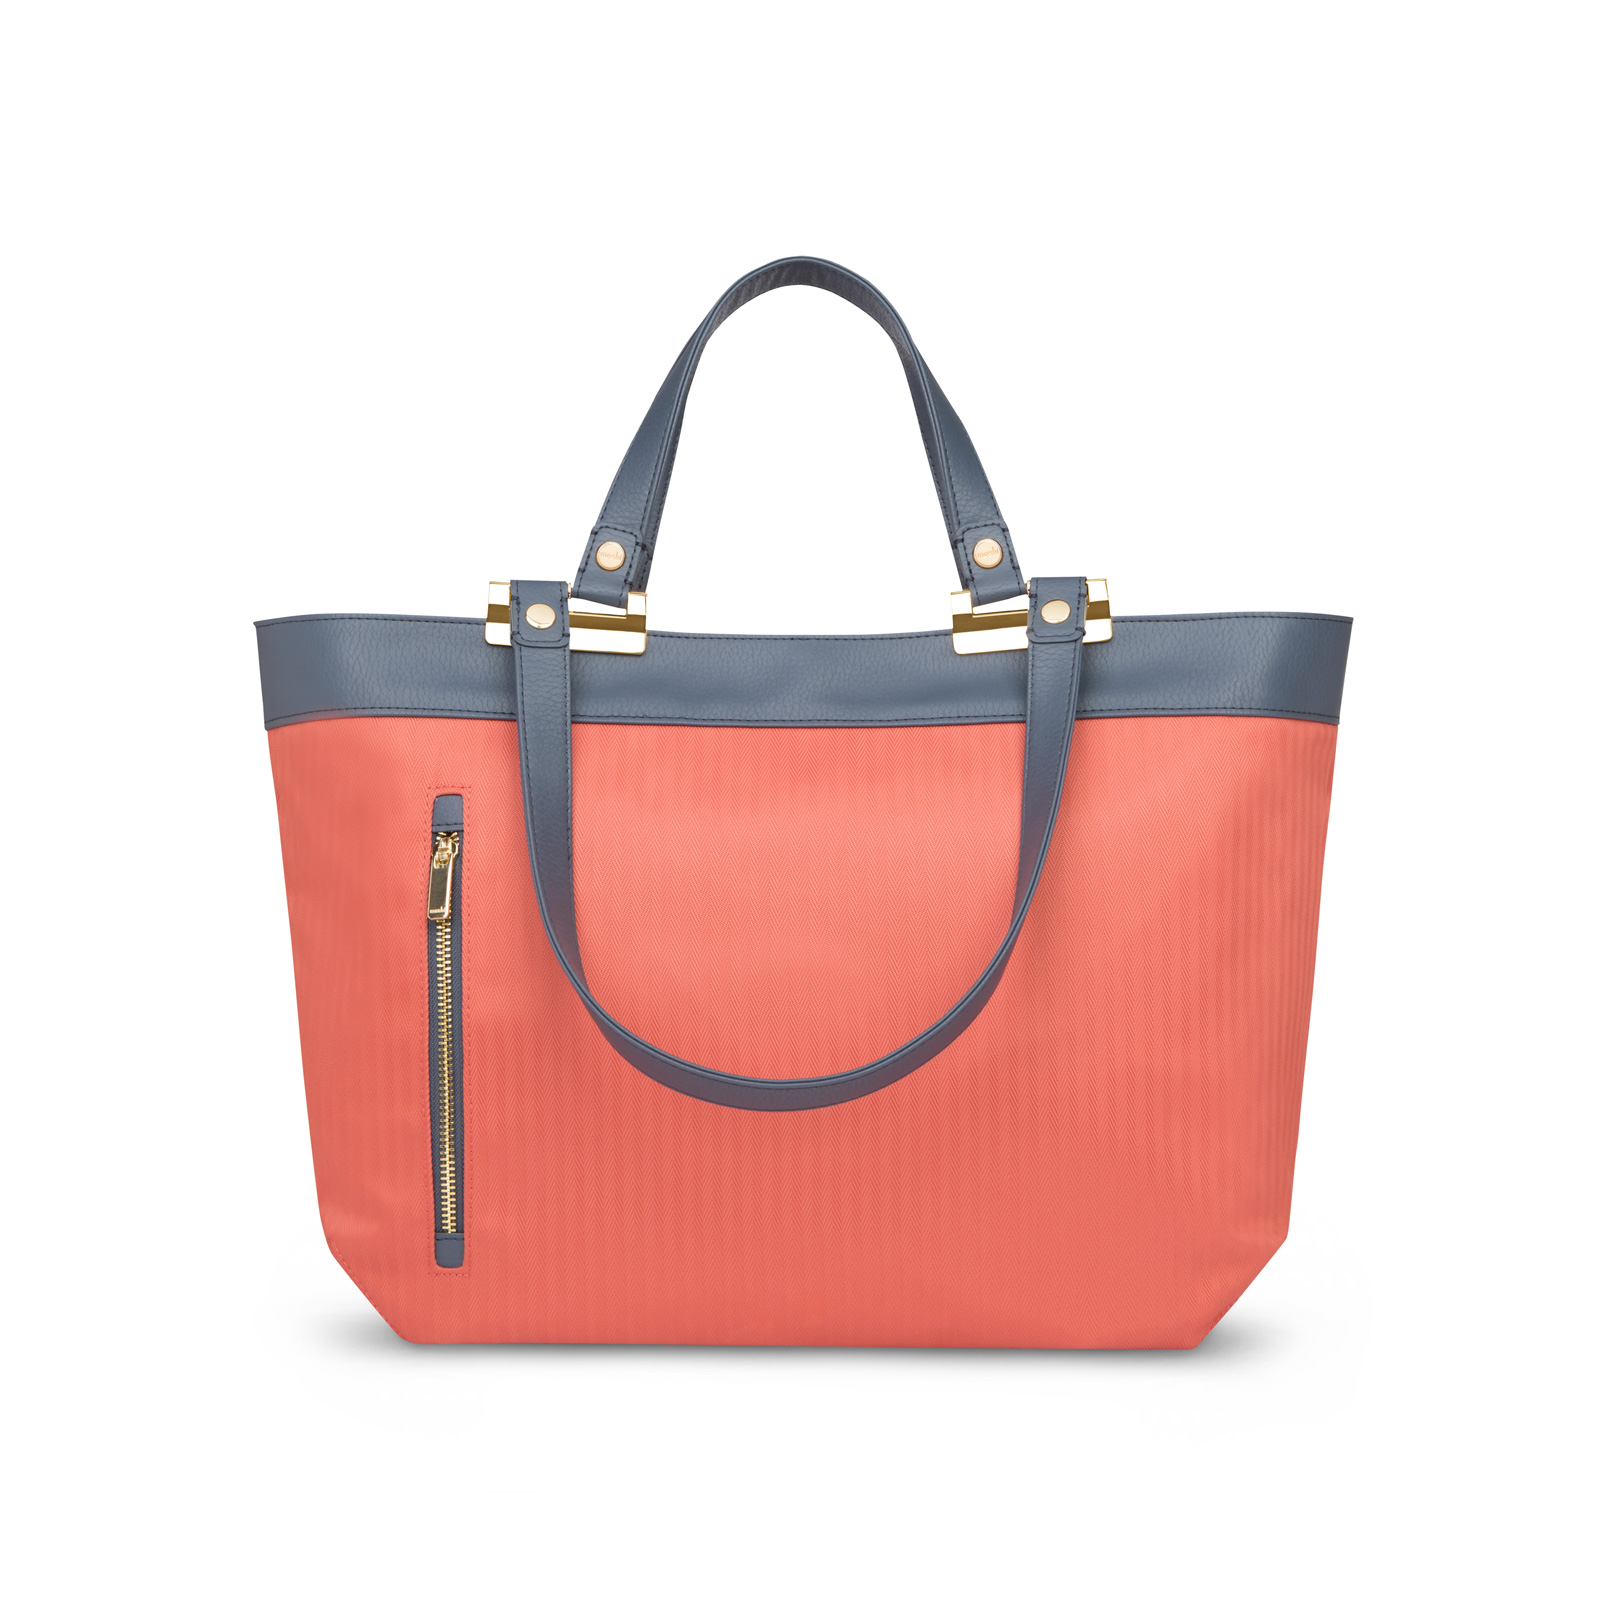 Verana Tote Work Bag-2-thumbnail